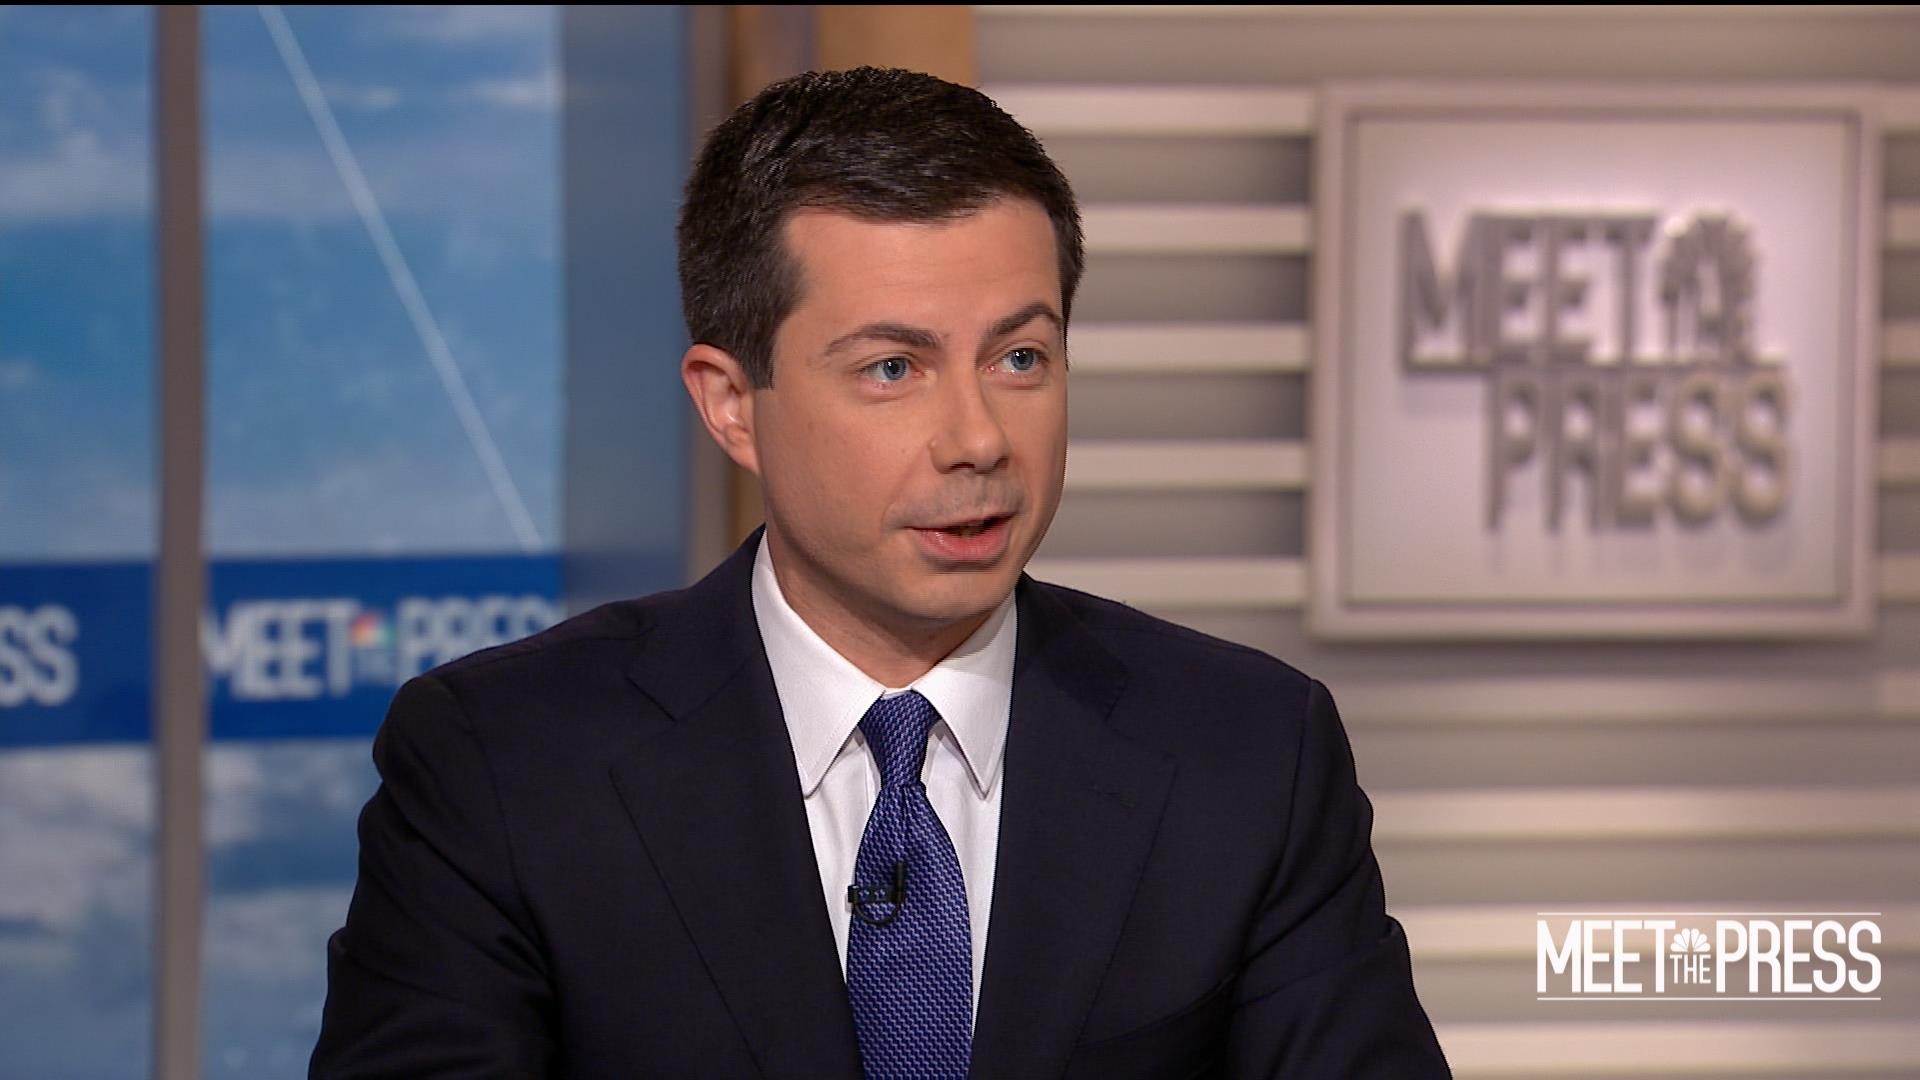 Buttigieg: U.S. has 'to keep its word' on deals, even after Trump